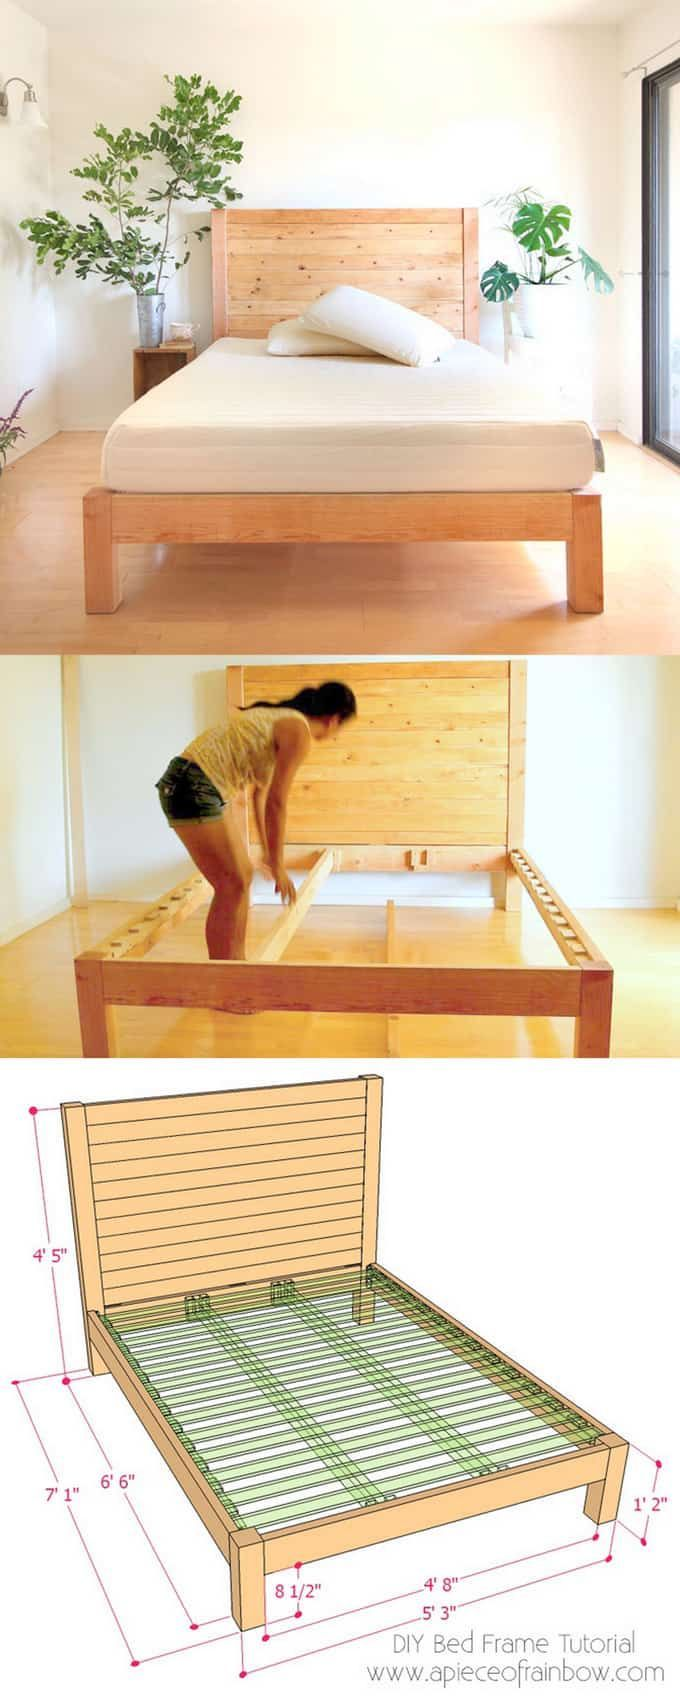 How to build a beautiful DIY bed frame & wood headboard easily. Free ...